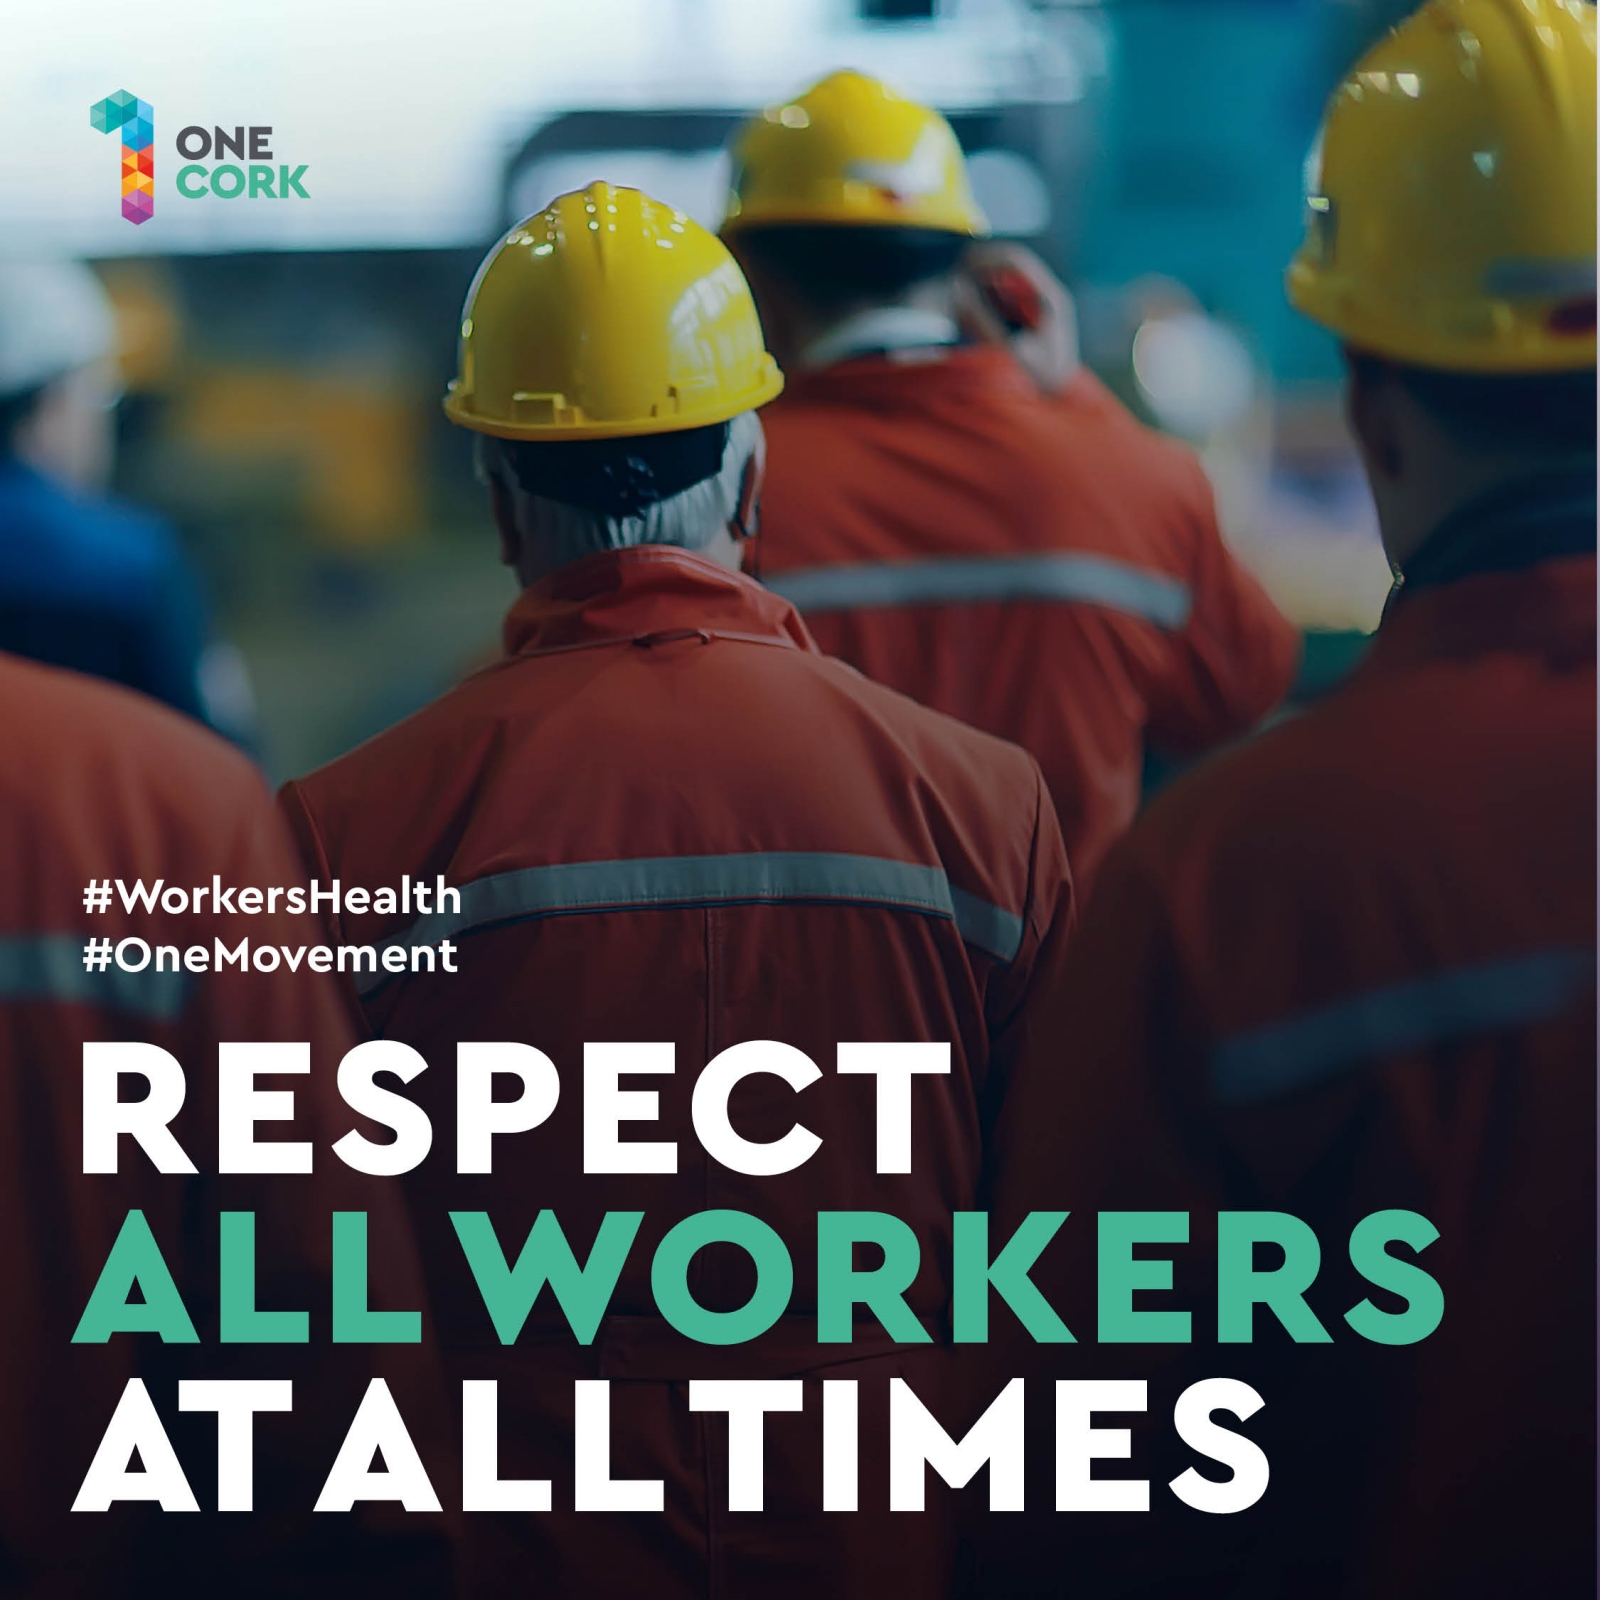 Respecting all workers at all times